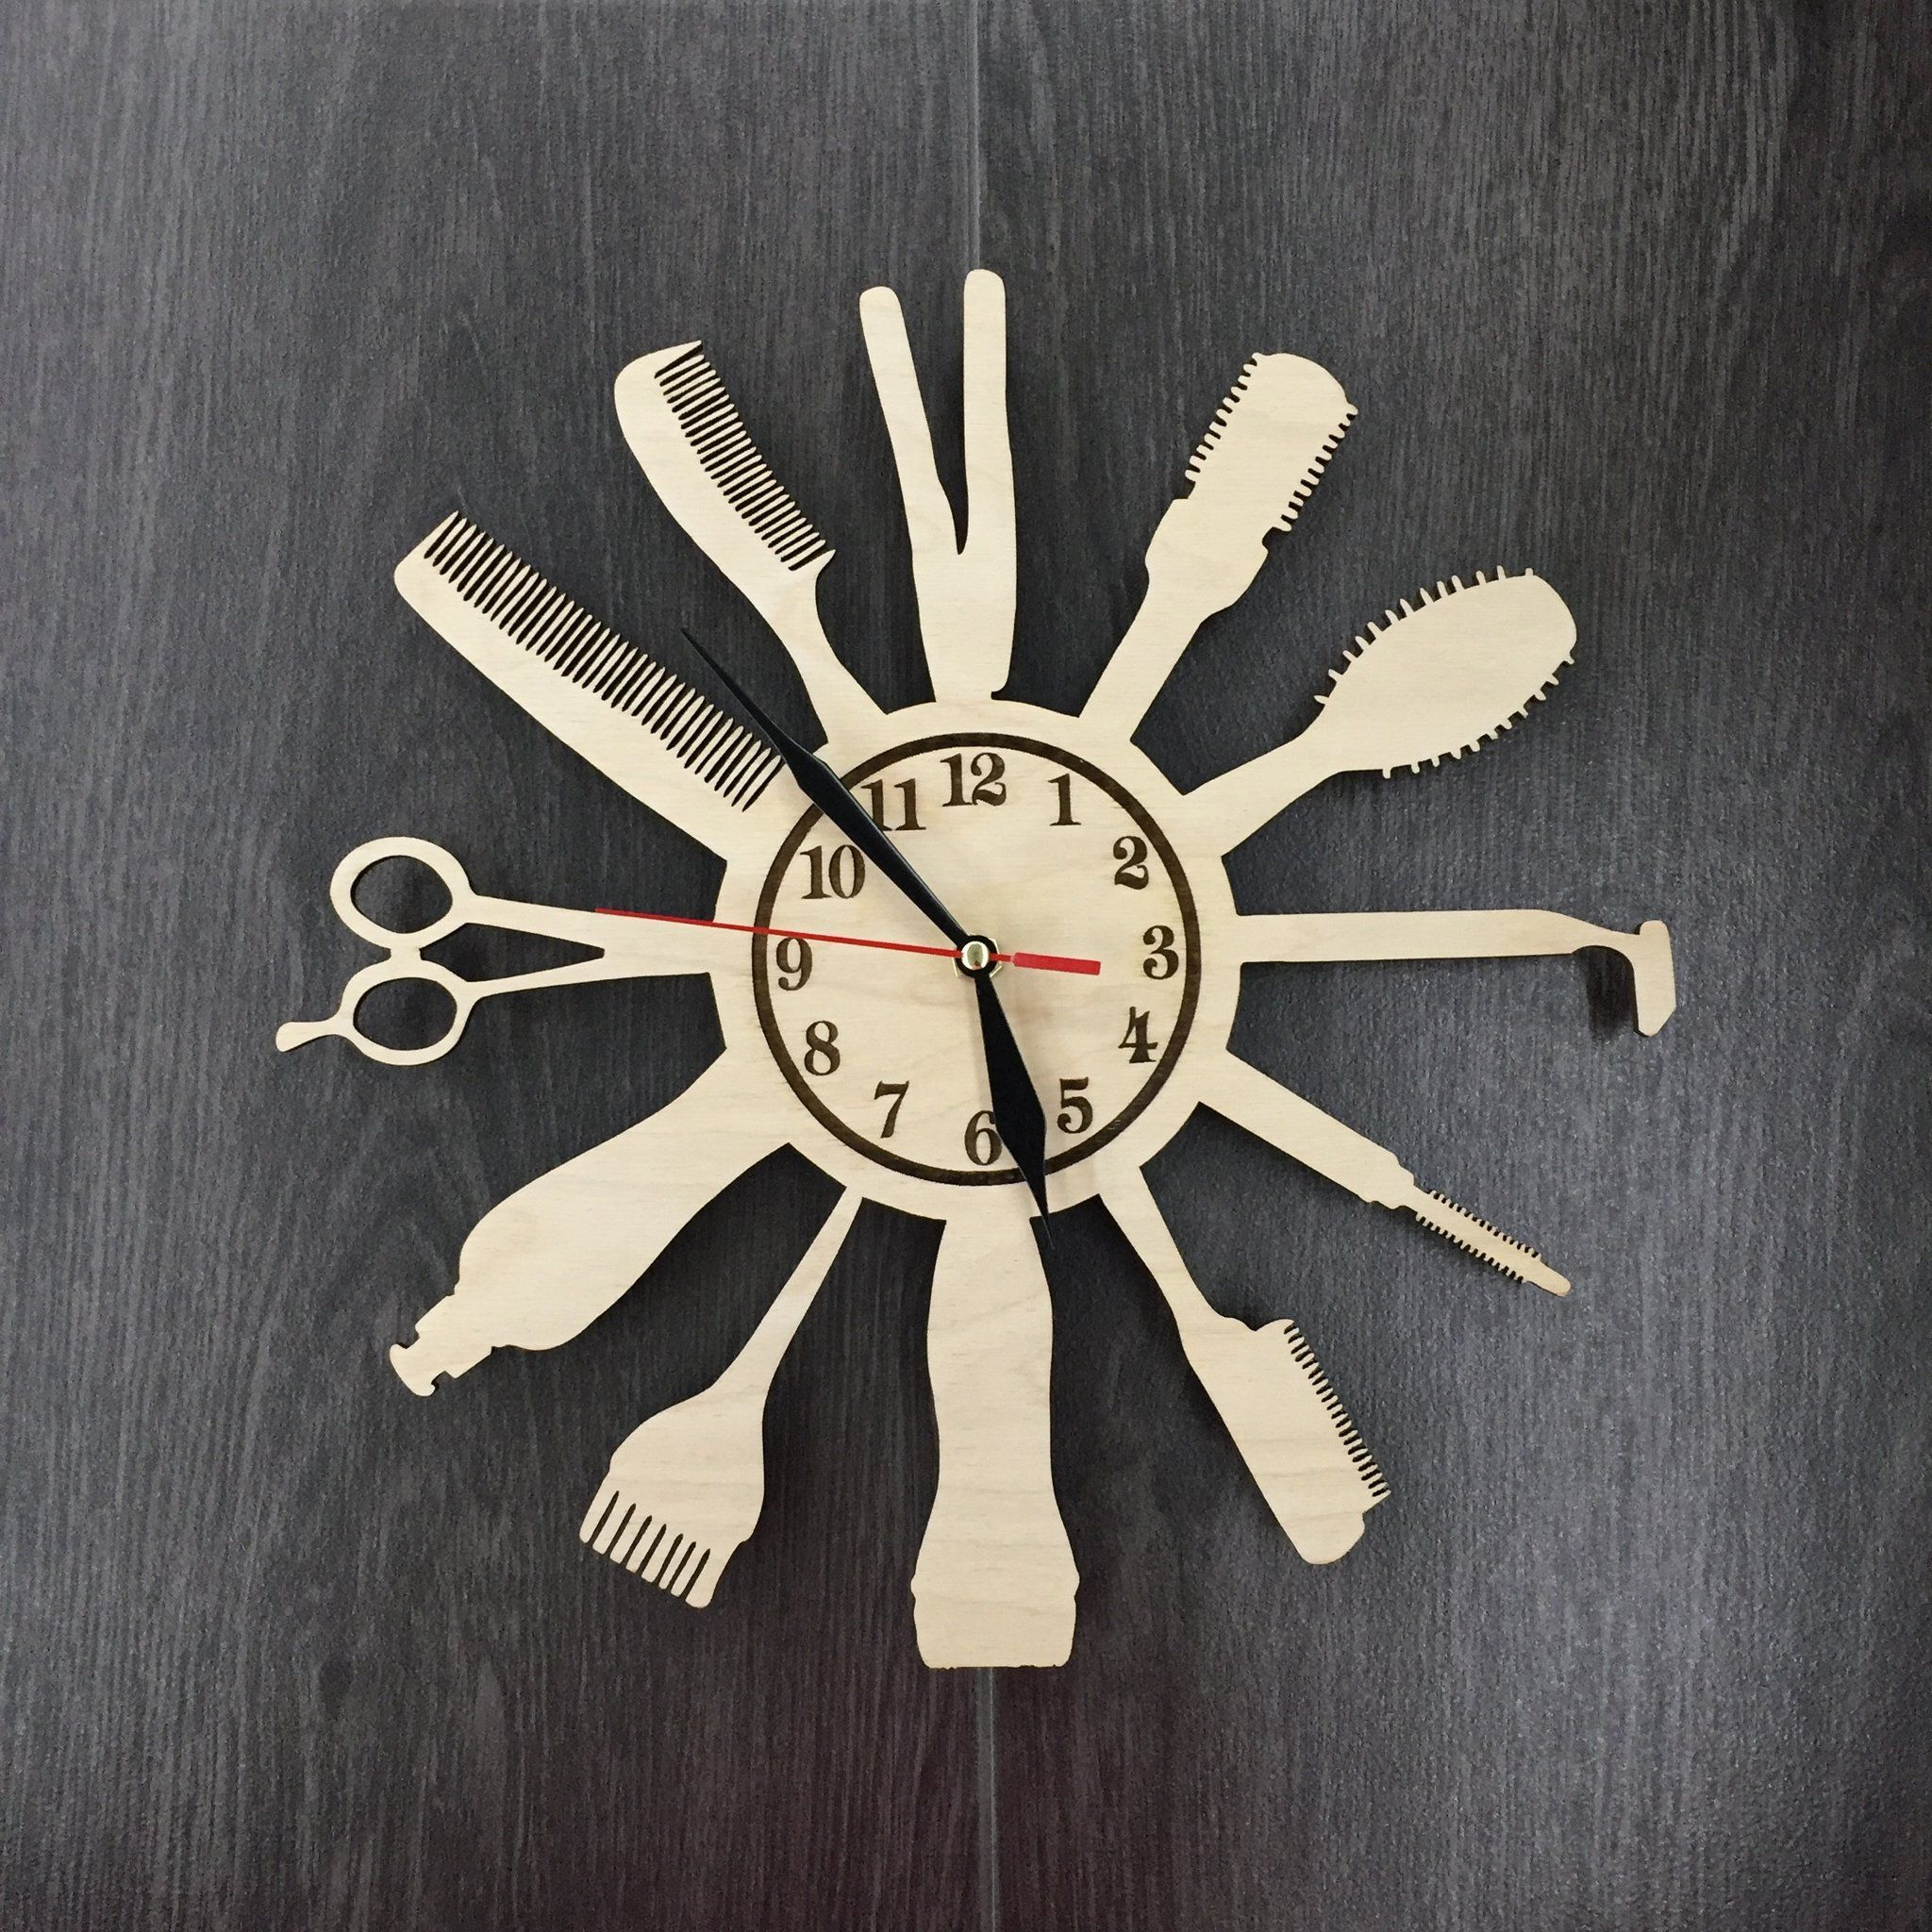 Barber Shop Wood Wall Clock 31 99 Size 12 In 30 Cm Really Cool Gift And Unique Home Decoration Derevyannye Chasy Tvorcheskie Idei Dekor Podelki Ruchnoj Raboty